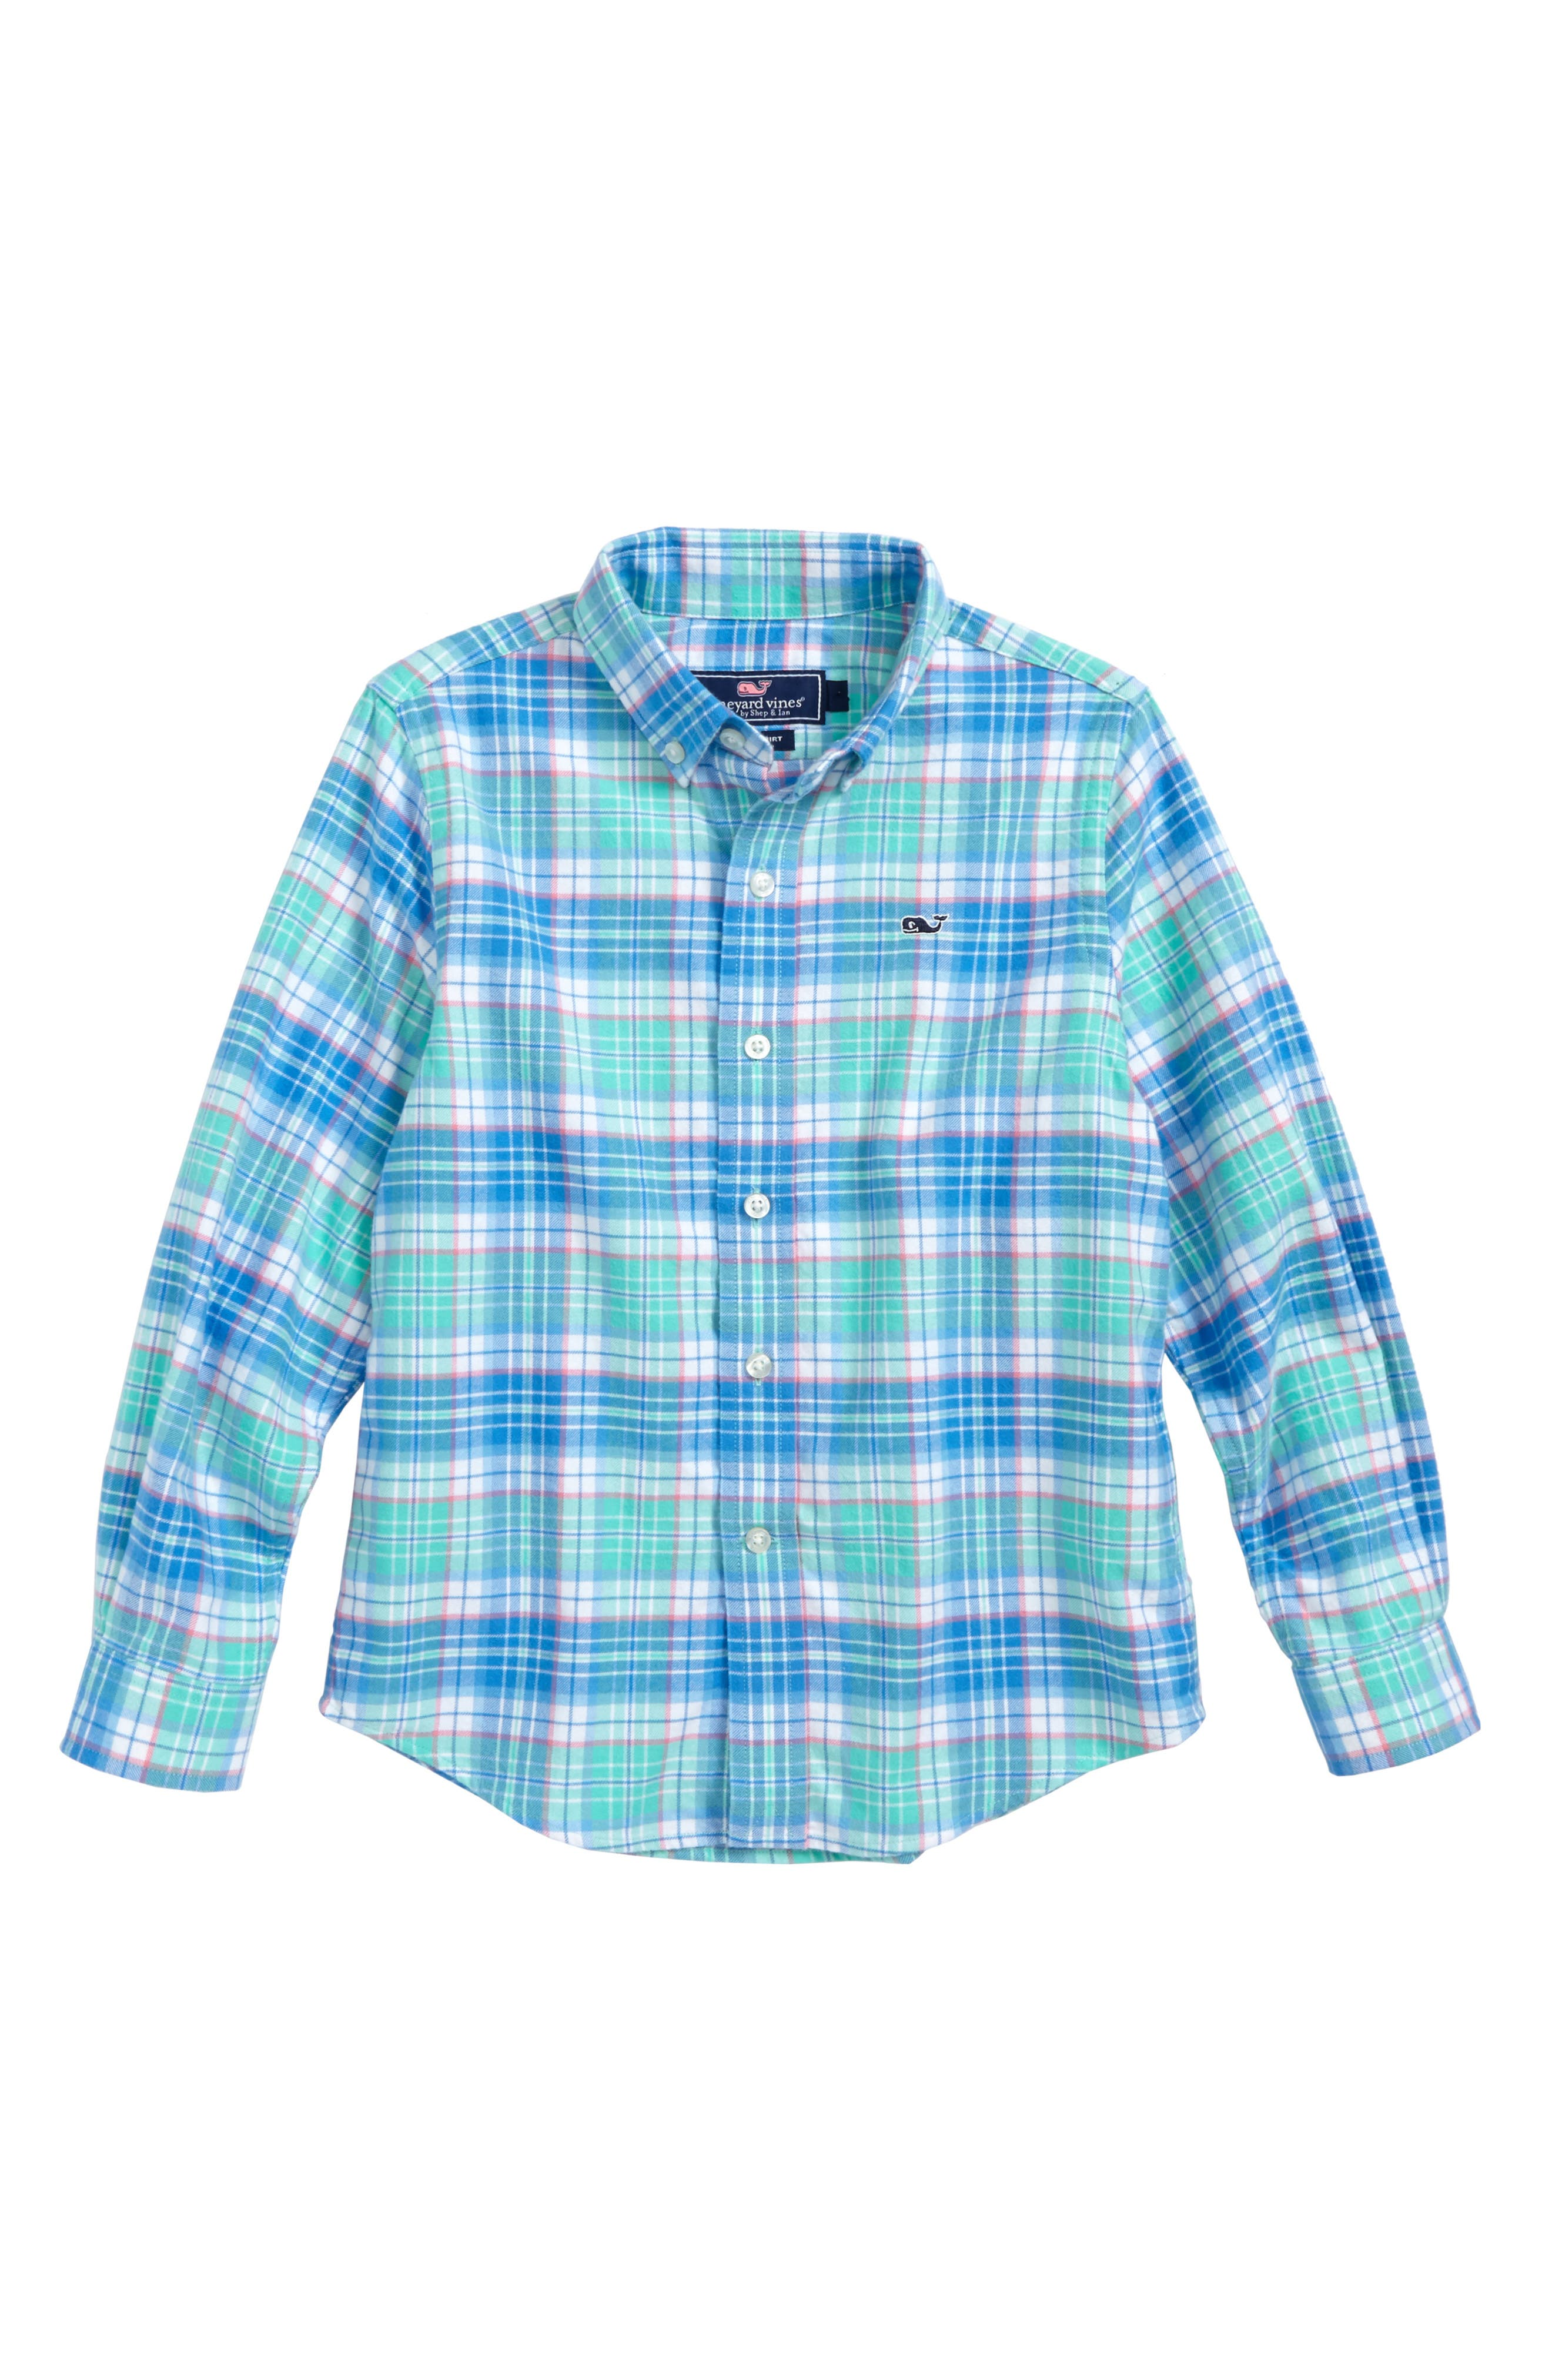 Main Image - vineyard vines Sandspar Plaid Whale Flannel Shirt (Toddler Boys & Little Boys)